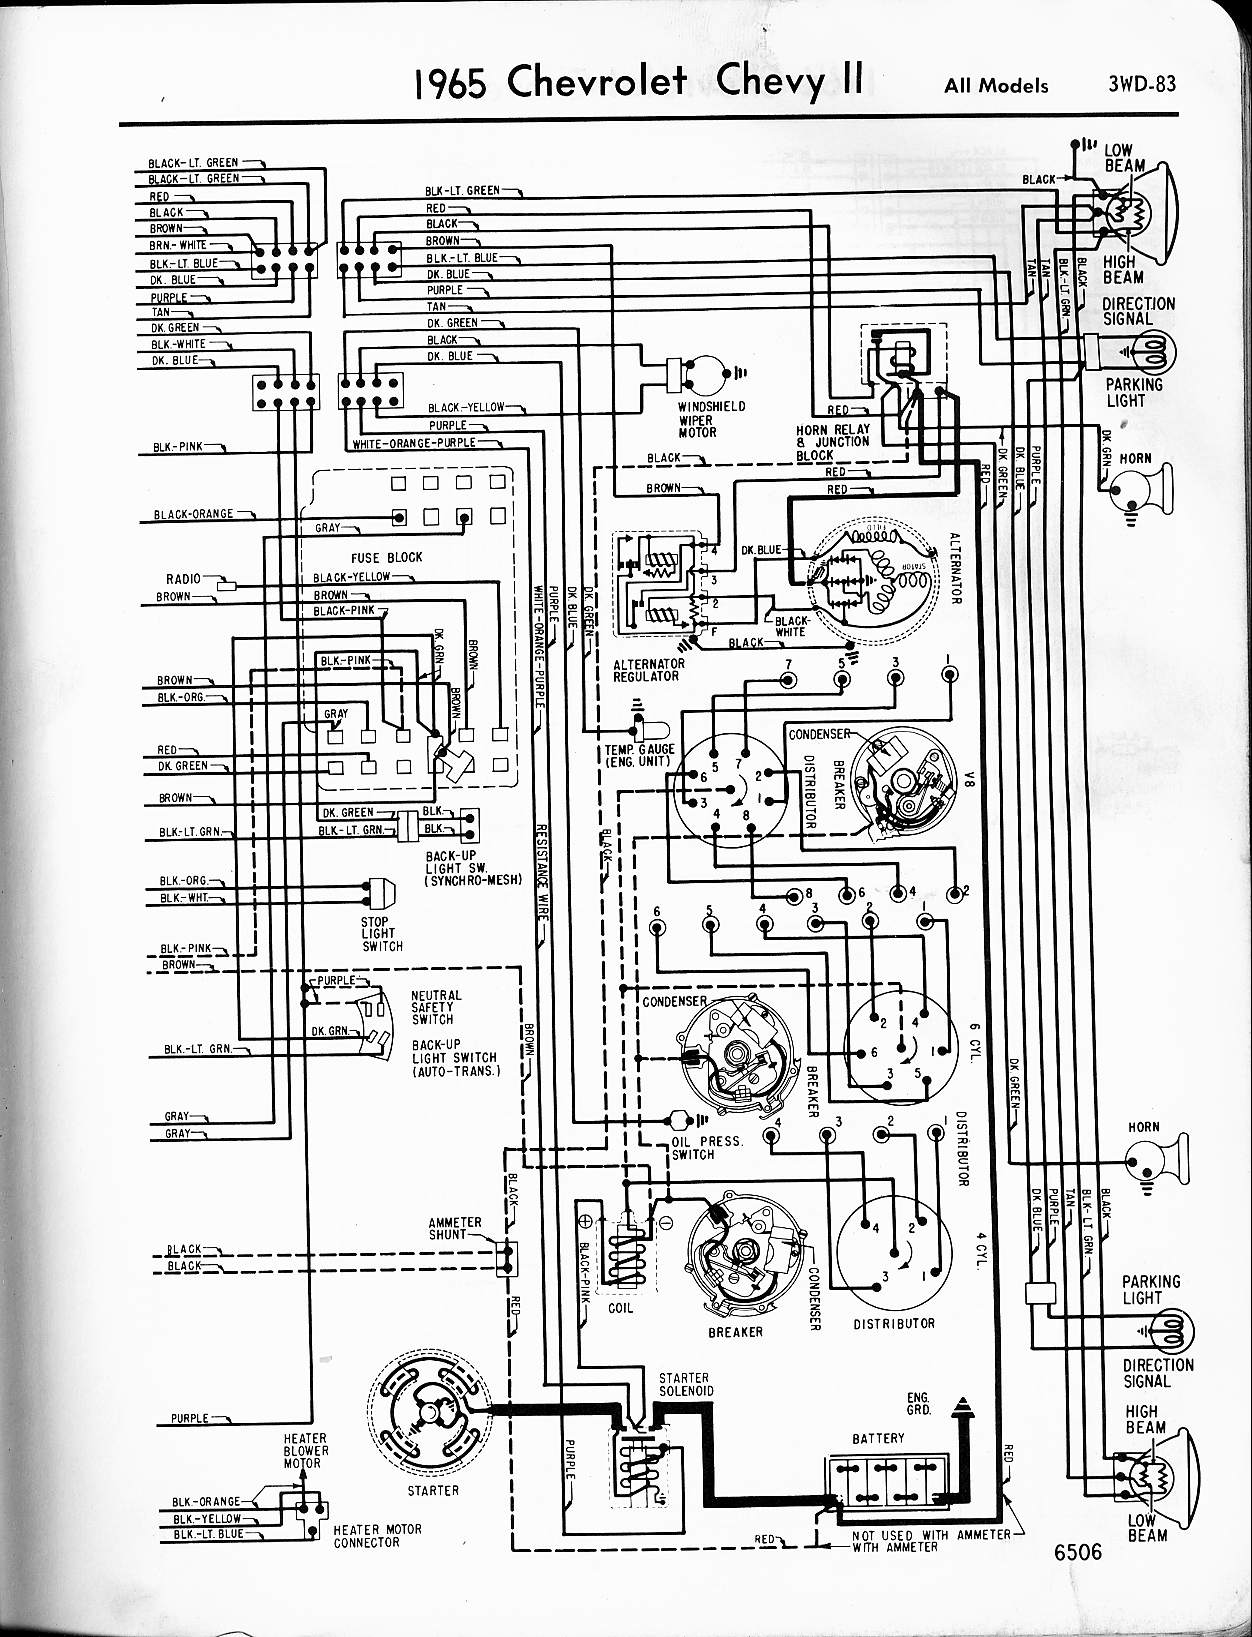 1967 c10 fuse block diagram schematics wiring diagrams u2022 rh parntesis  co Circuit Breaker Box Home Fuse Box Wiring